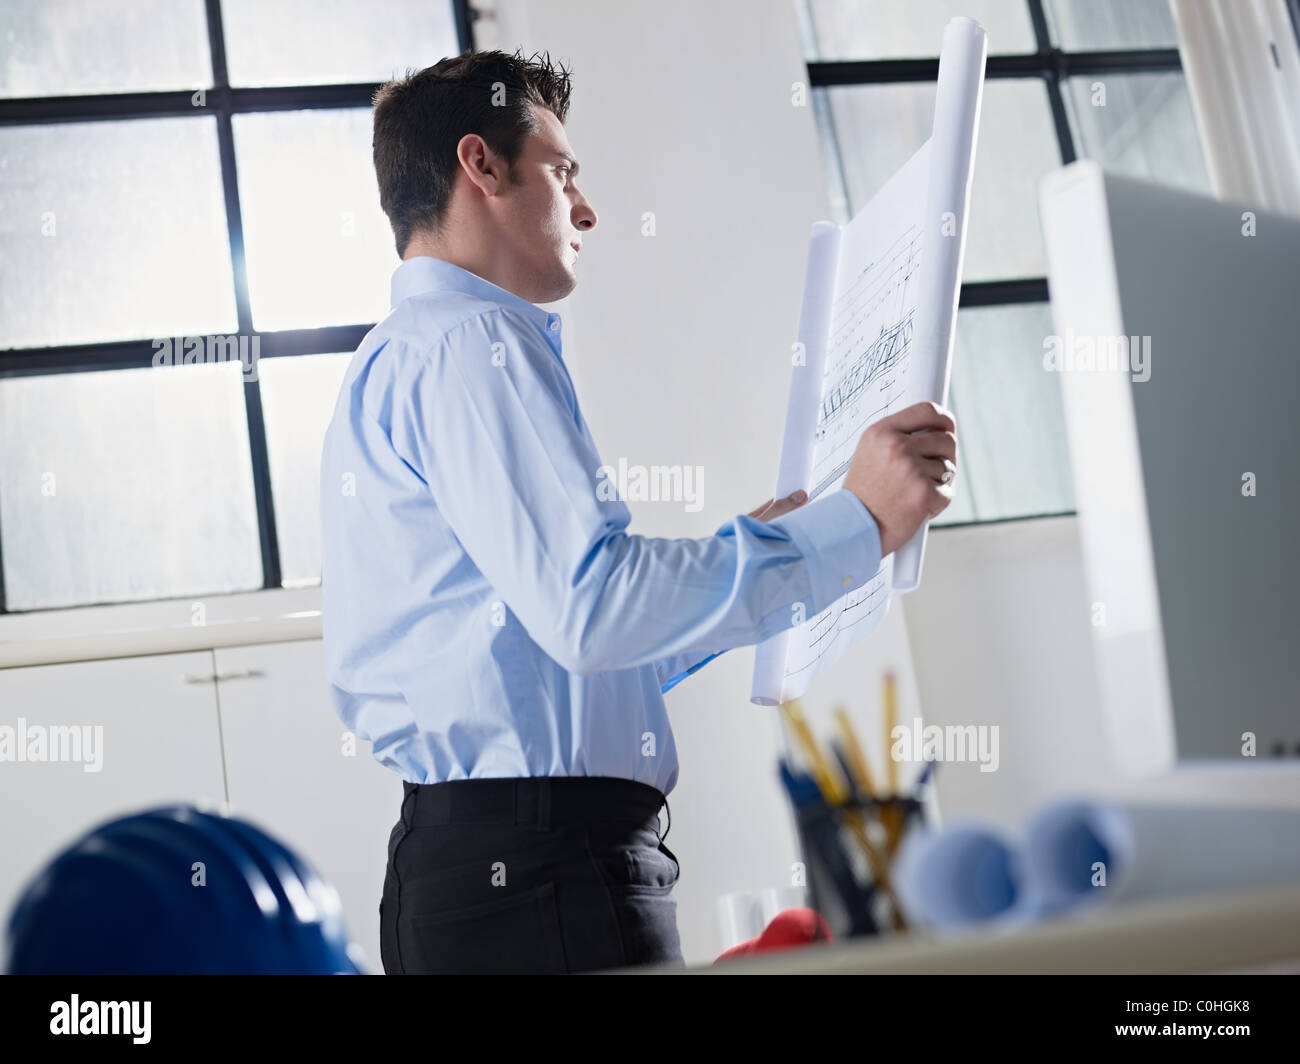 mid adult caucasian male architect examining building plan. Horizontal shape, waist up, side view - Stock Image